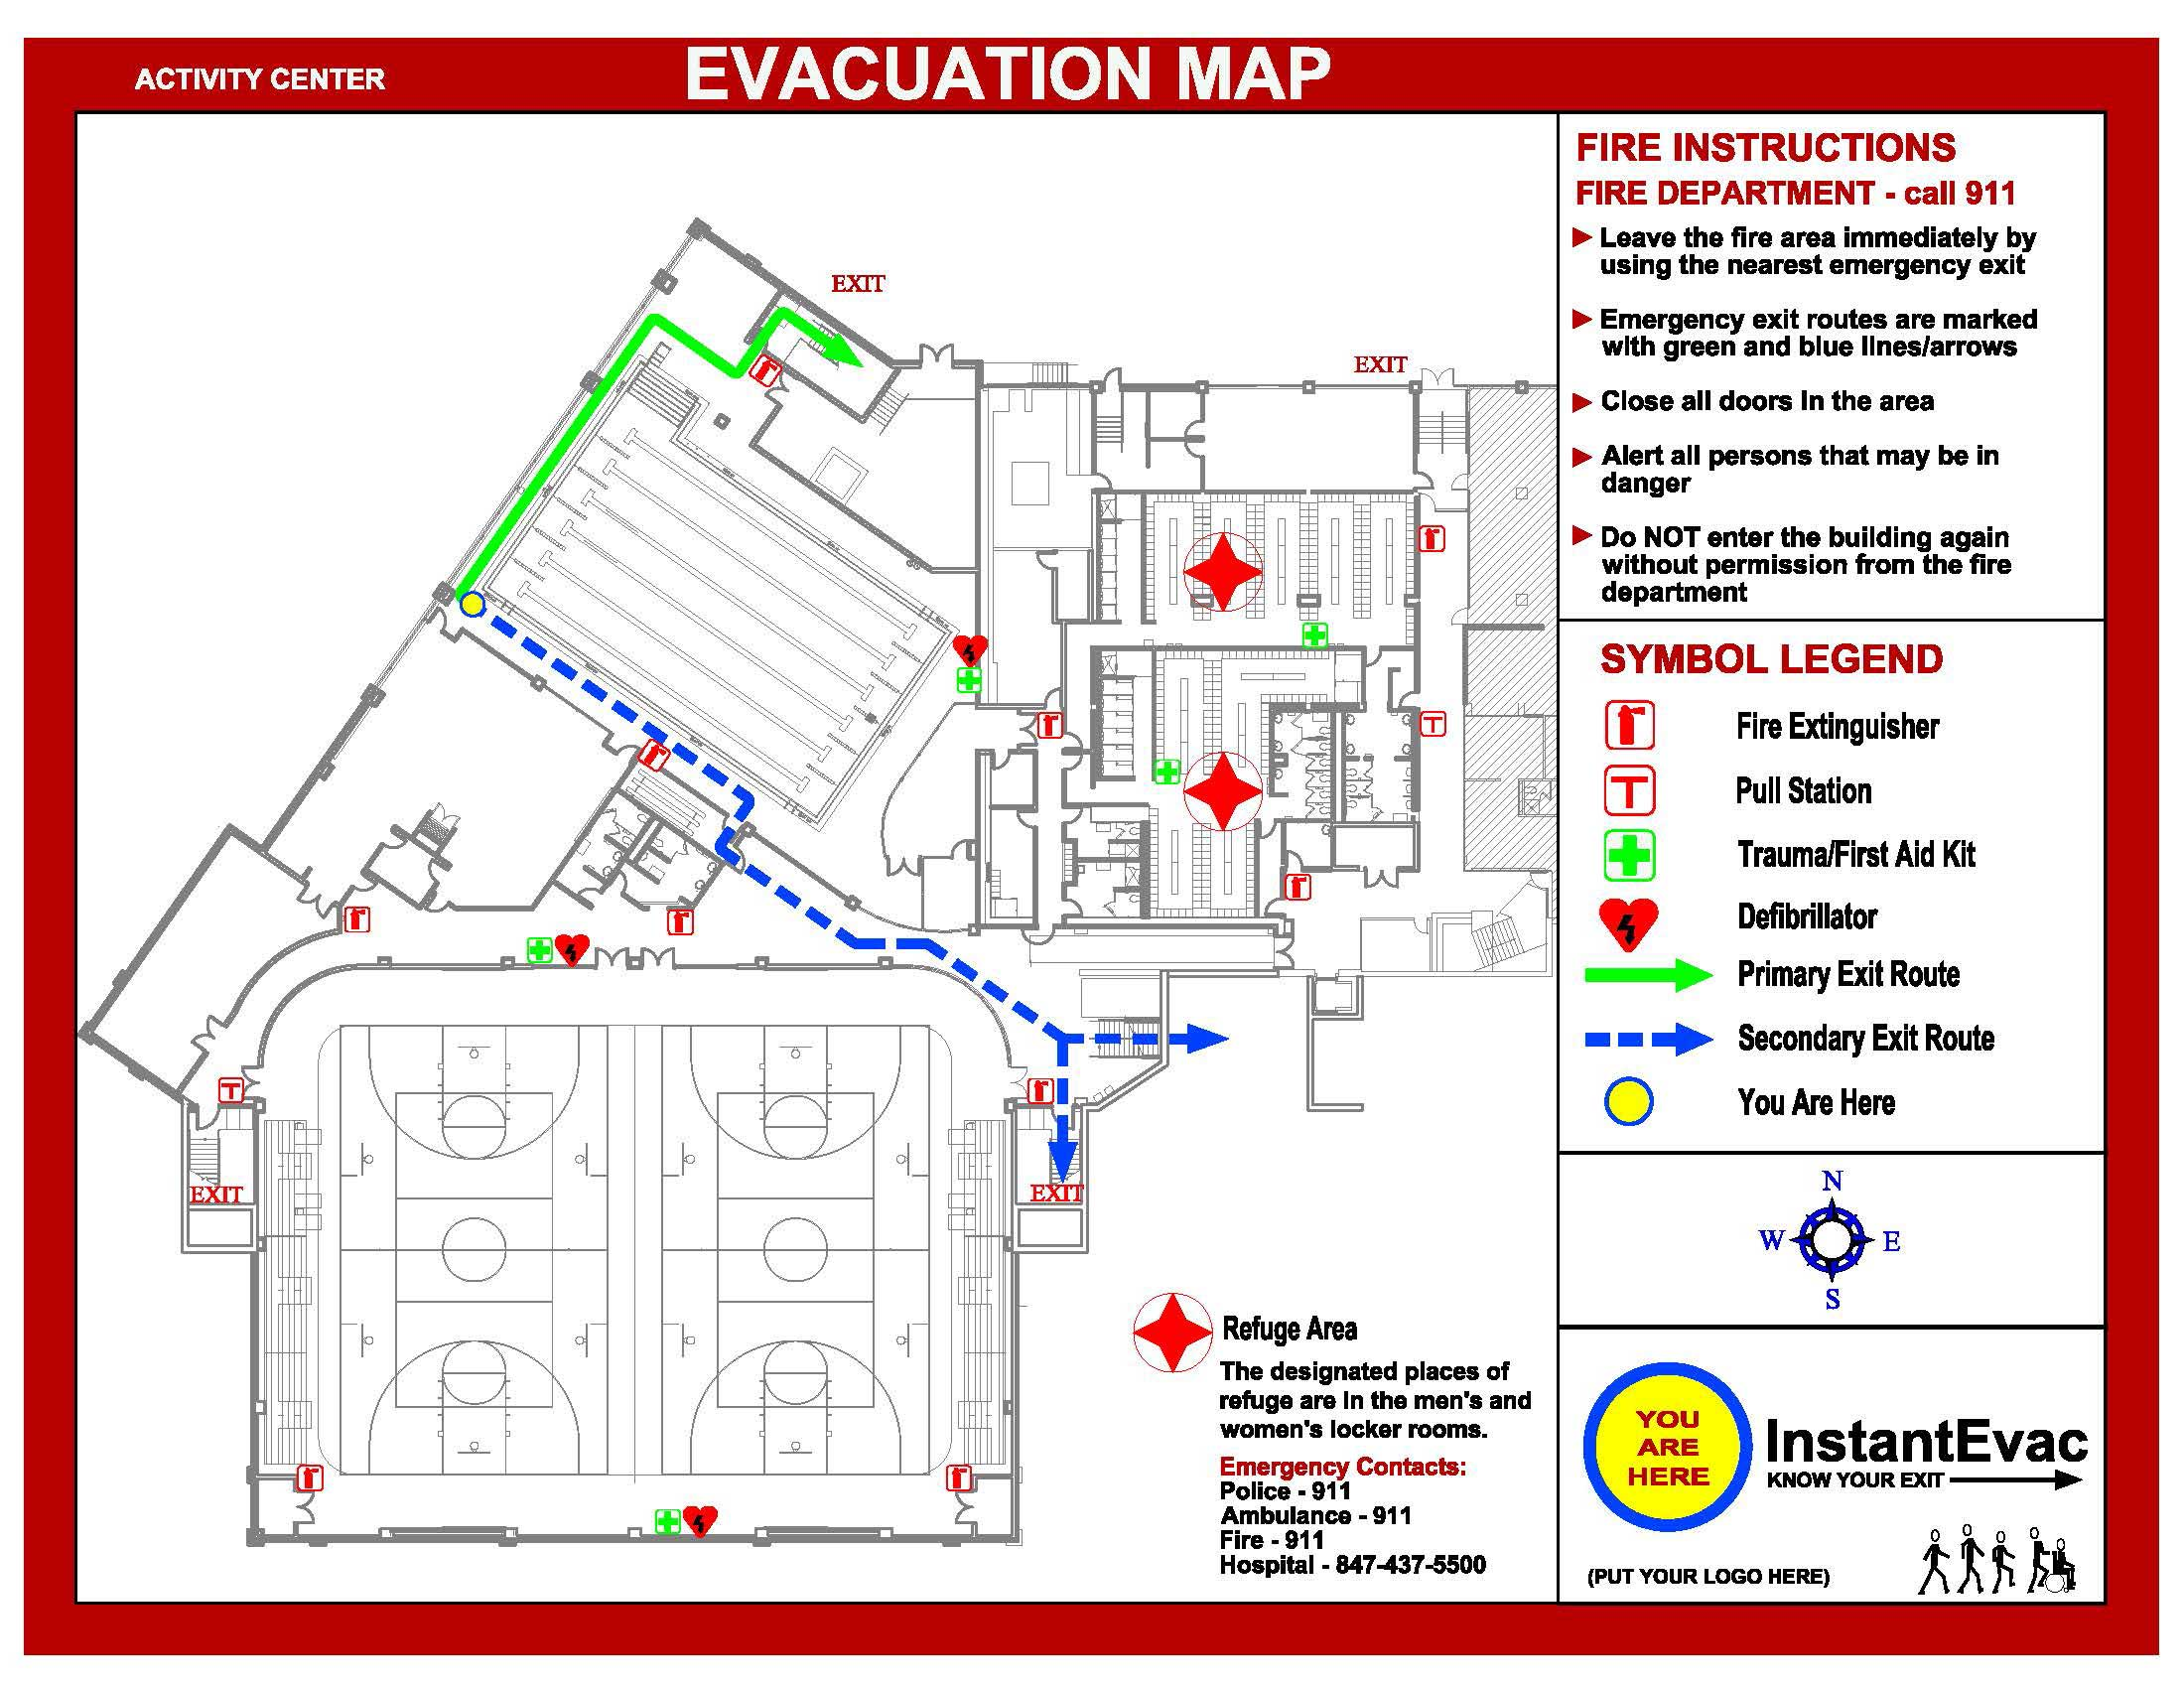 Know your Exit | InstantEVAC » Samples Sample Emergency Exit Route Map on emergency route signage buildings, emergency exits school map, building evacuation maps, format for emergency exit maps, apartment fire safety maps, motorcycle route maps, building emergency exit plan maps, emergency evacuation maps, emergency escape maps, mcdonald's emergency plan maps, fire prevention maps, making evacuation maps, ammonia chemical release evacuation maps, emergency map locaiton, ups route maps, location of fire exit maps,